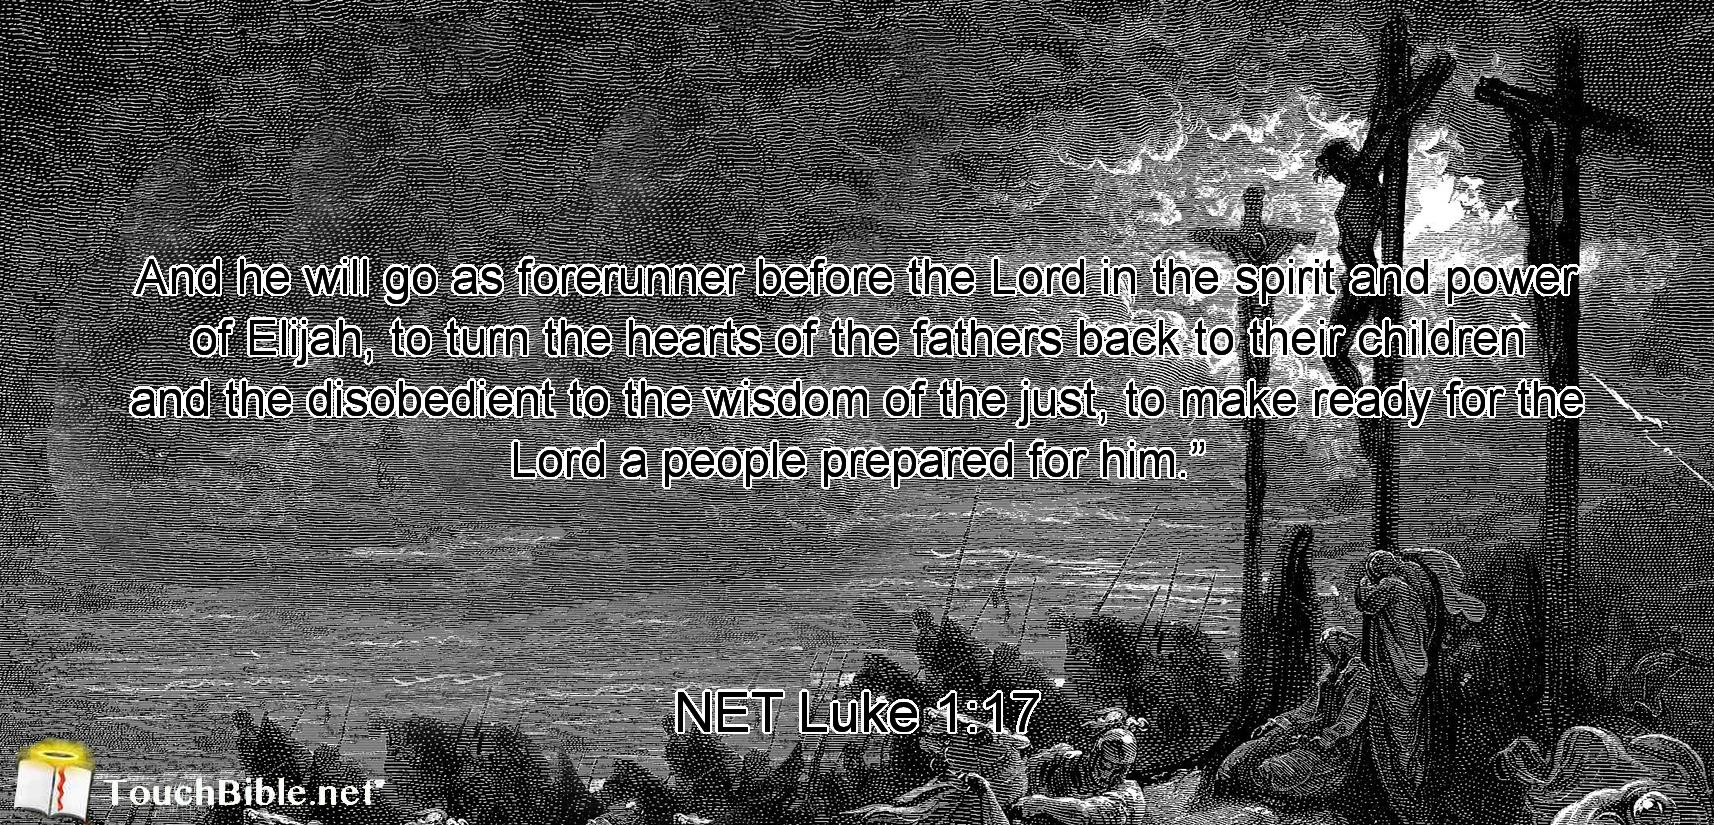 touchbible-verse-image-net-luke-1-17_5